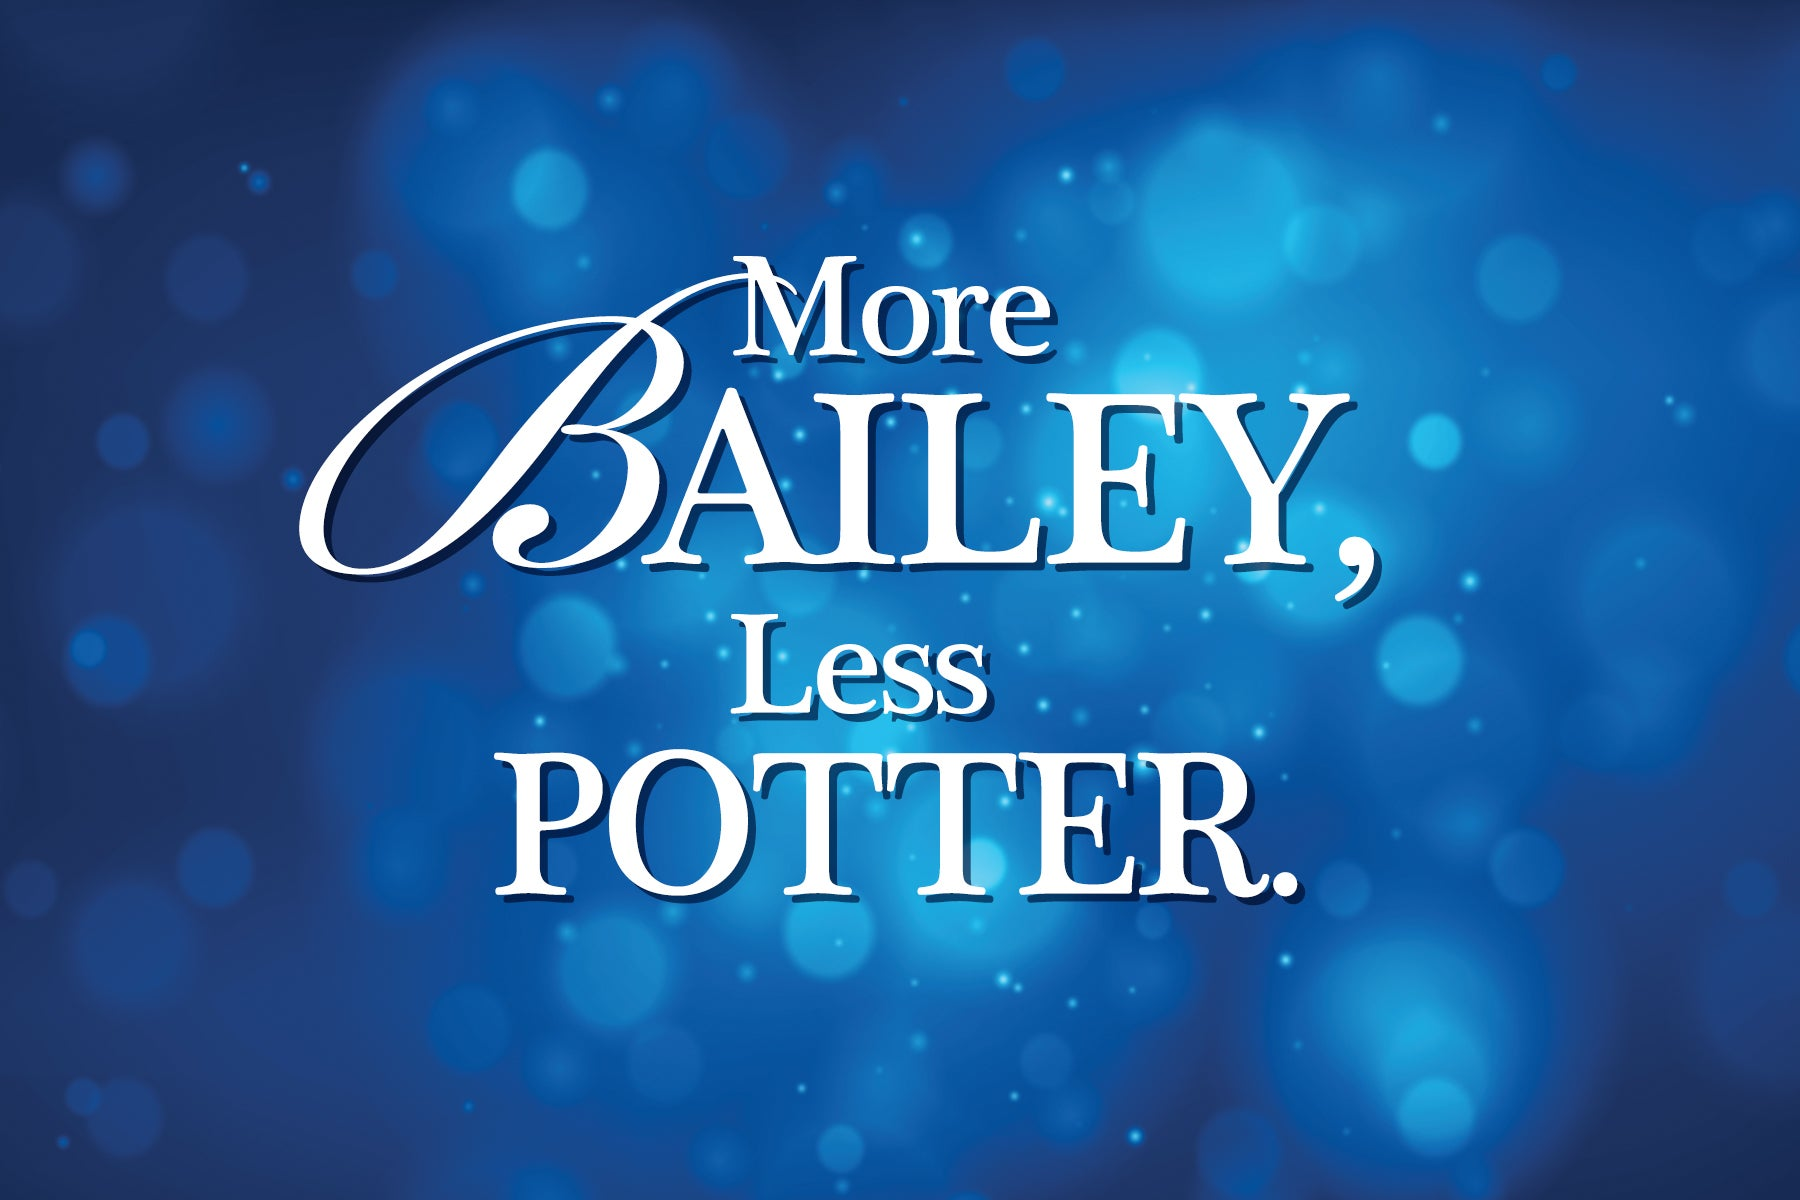 What it means to be More Bailey, Less Potter!